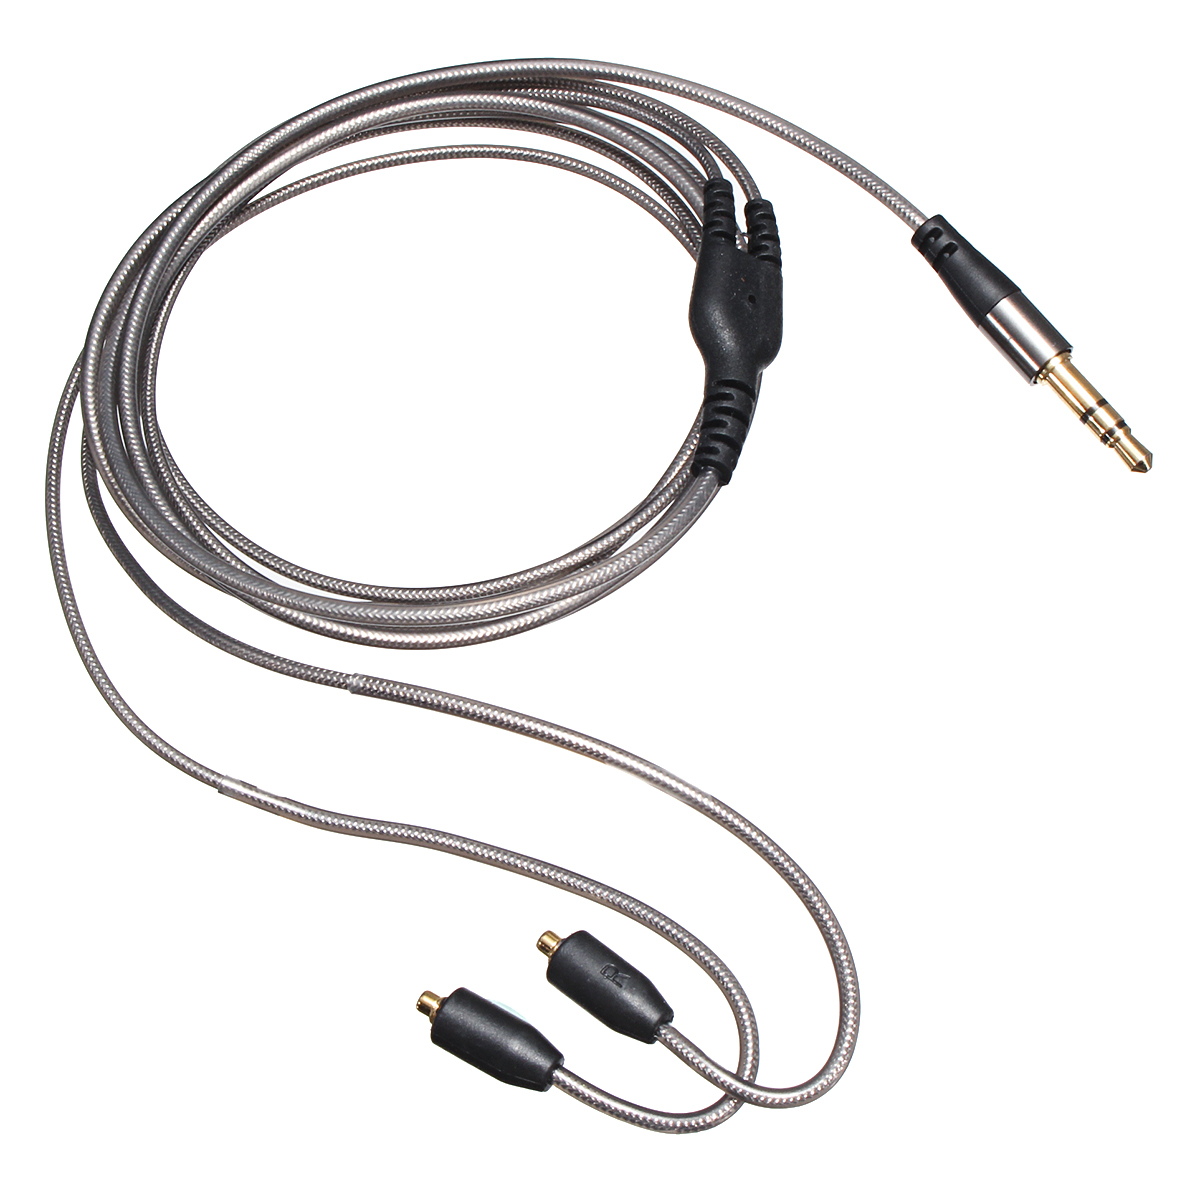 Diy 3 5mm Earphone Audio Cable Replacement For Shure